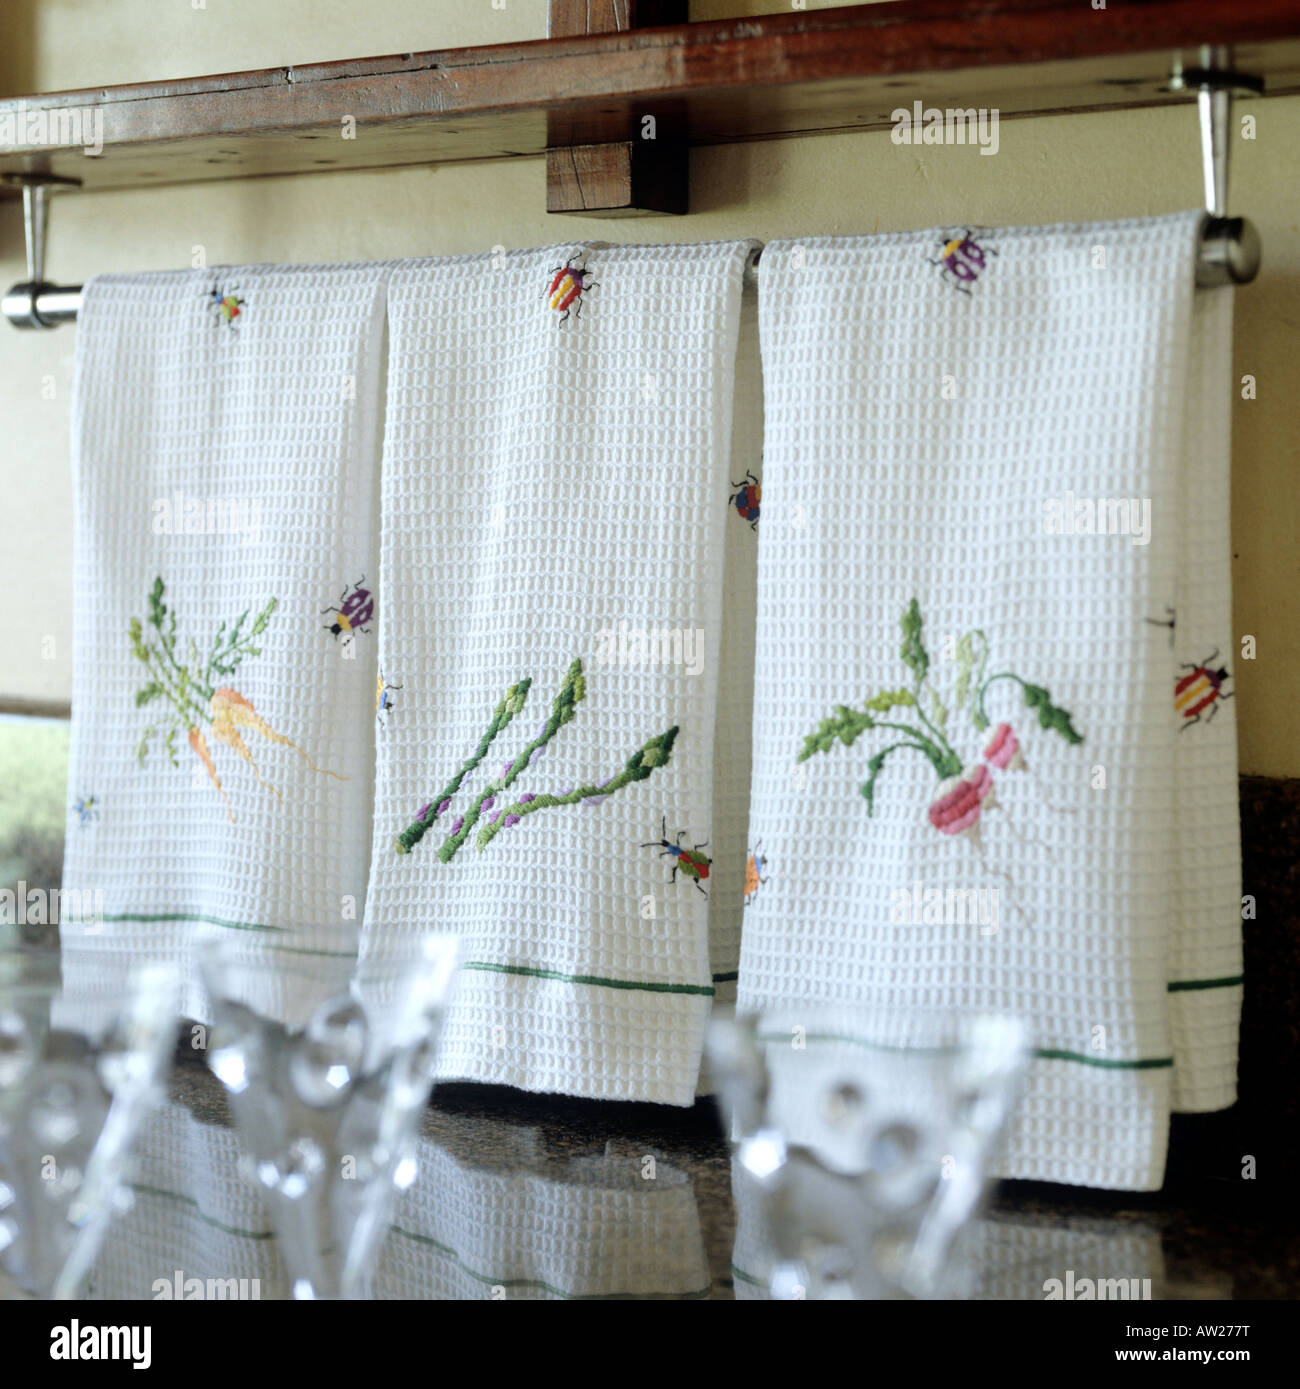 hand embroidered cotton towels arranged on rail in a kitchen Stock ...